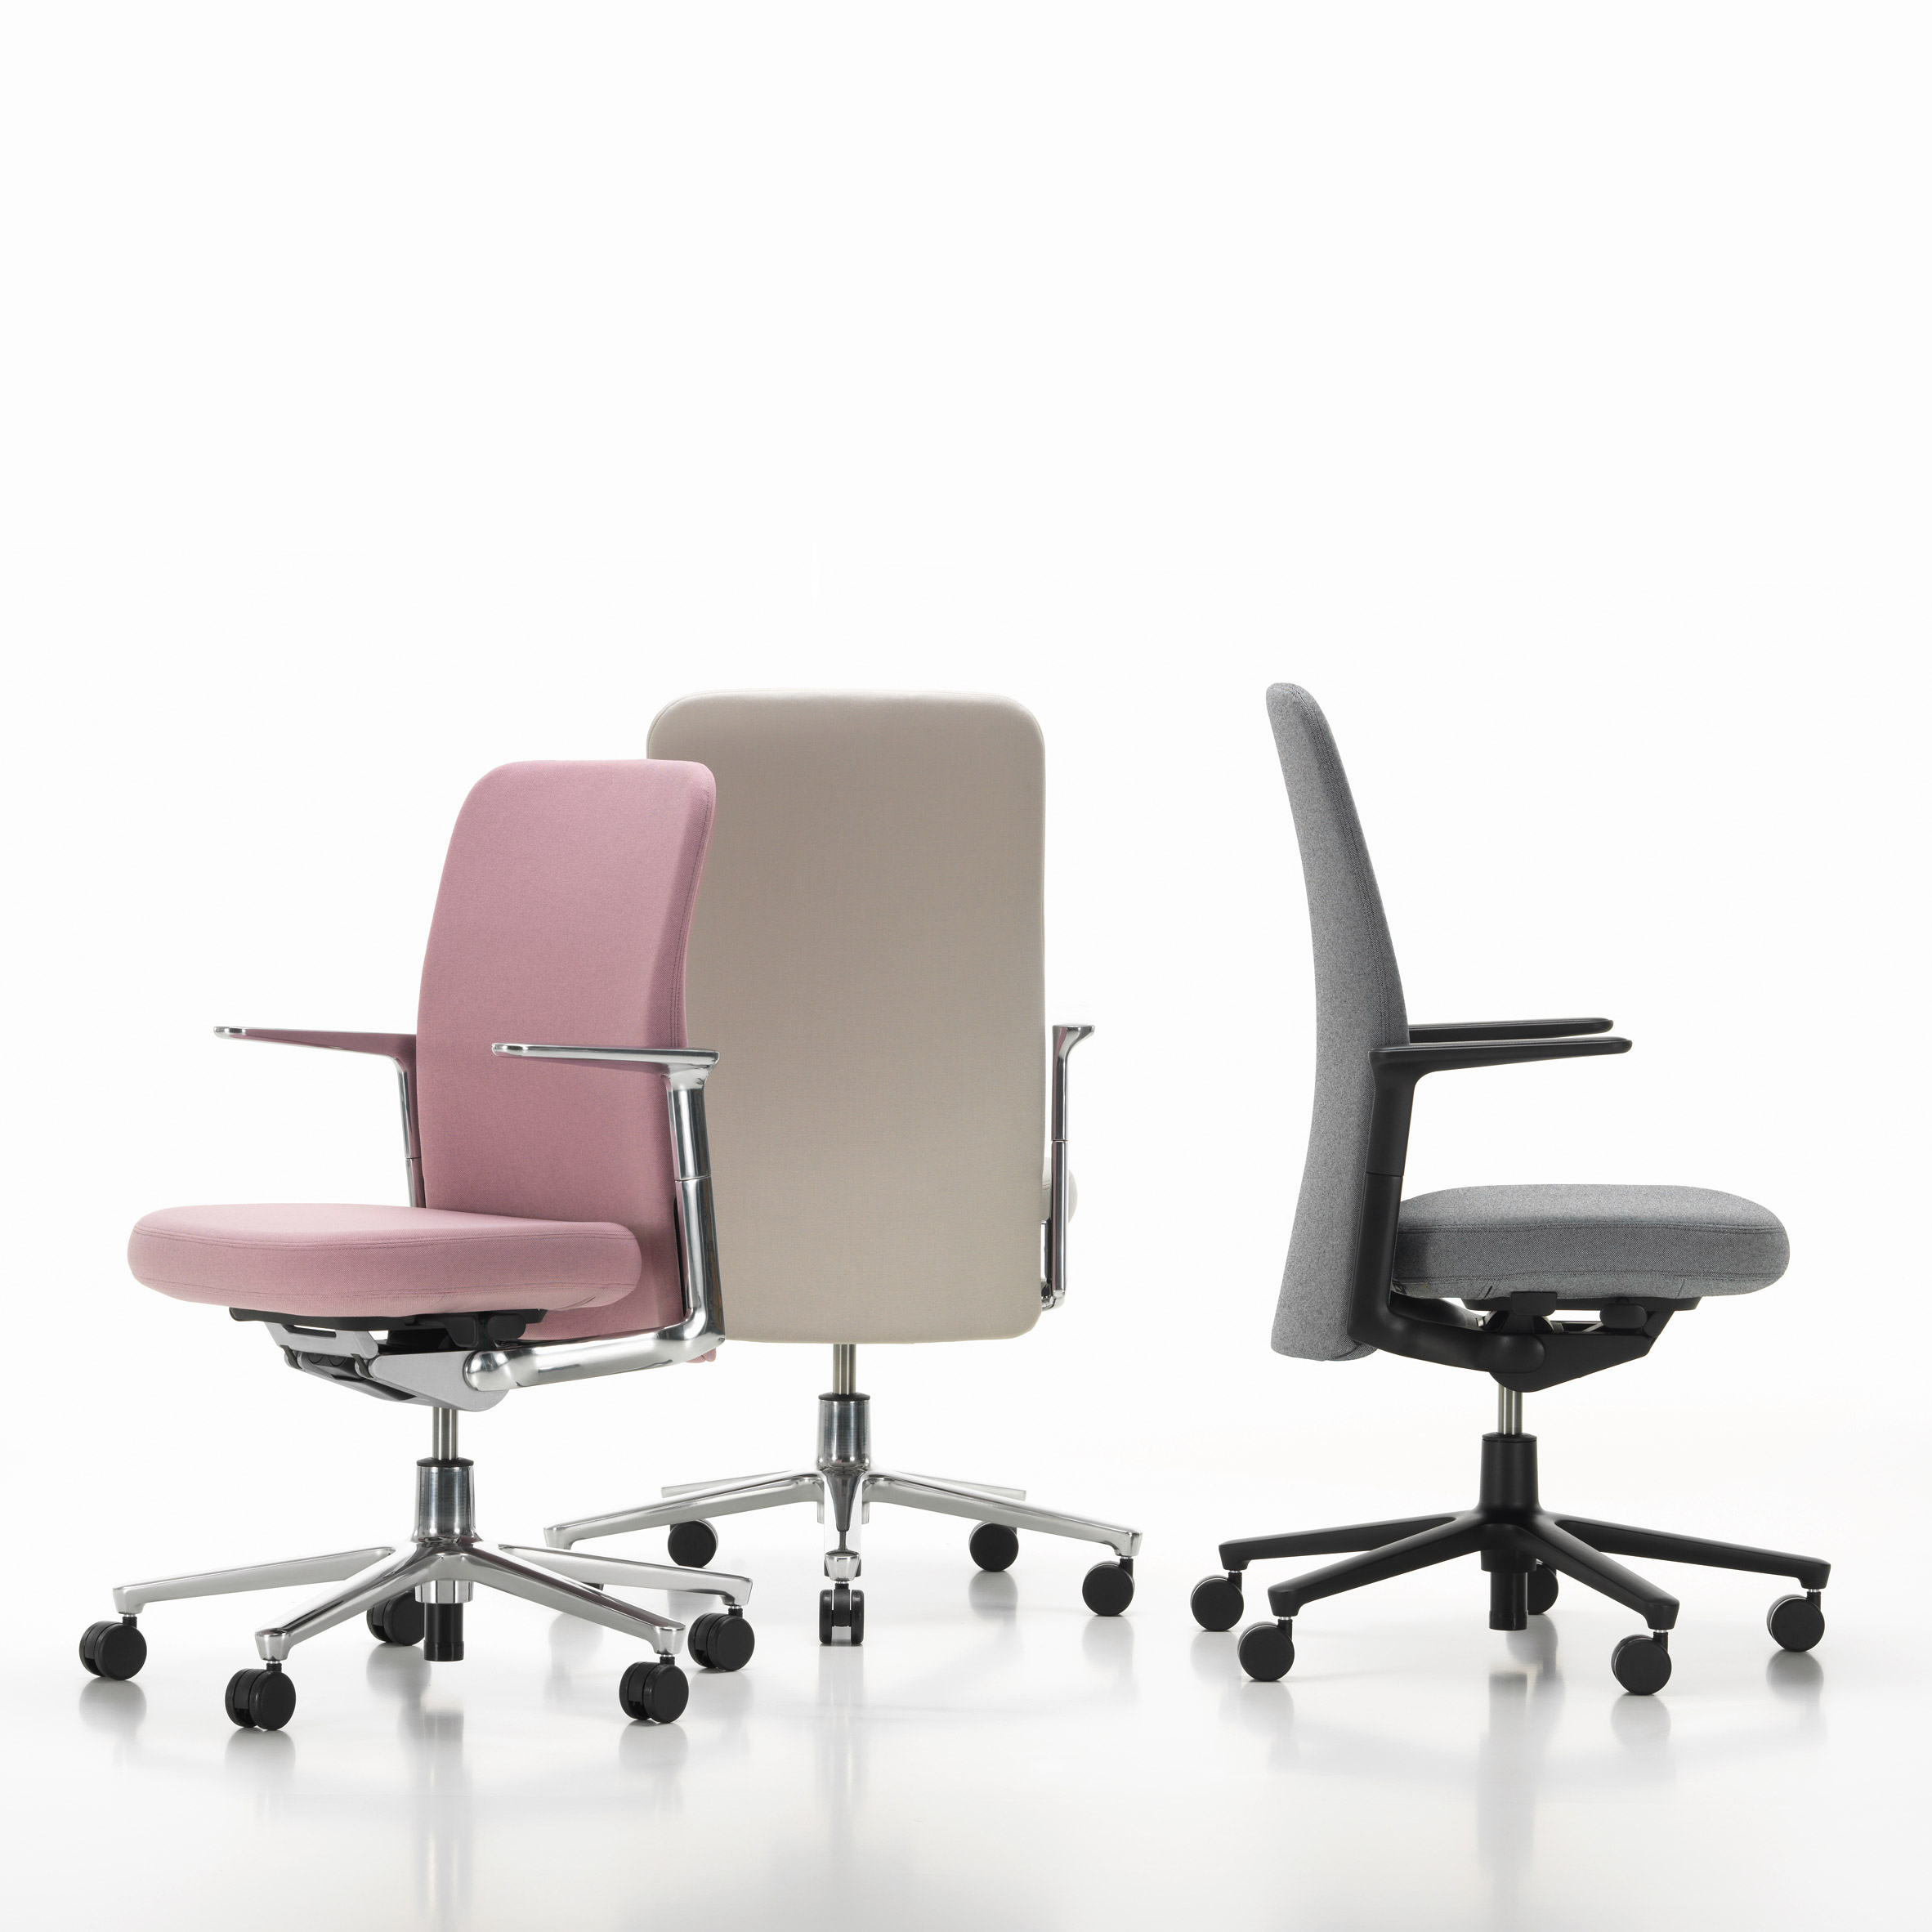 Vitra Office Chair Barber And Osgerby Designs Pacific Chair For Vitra